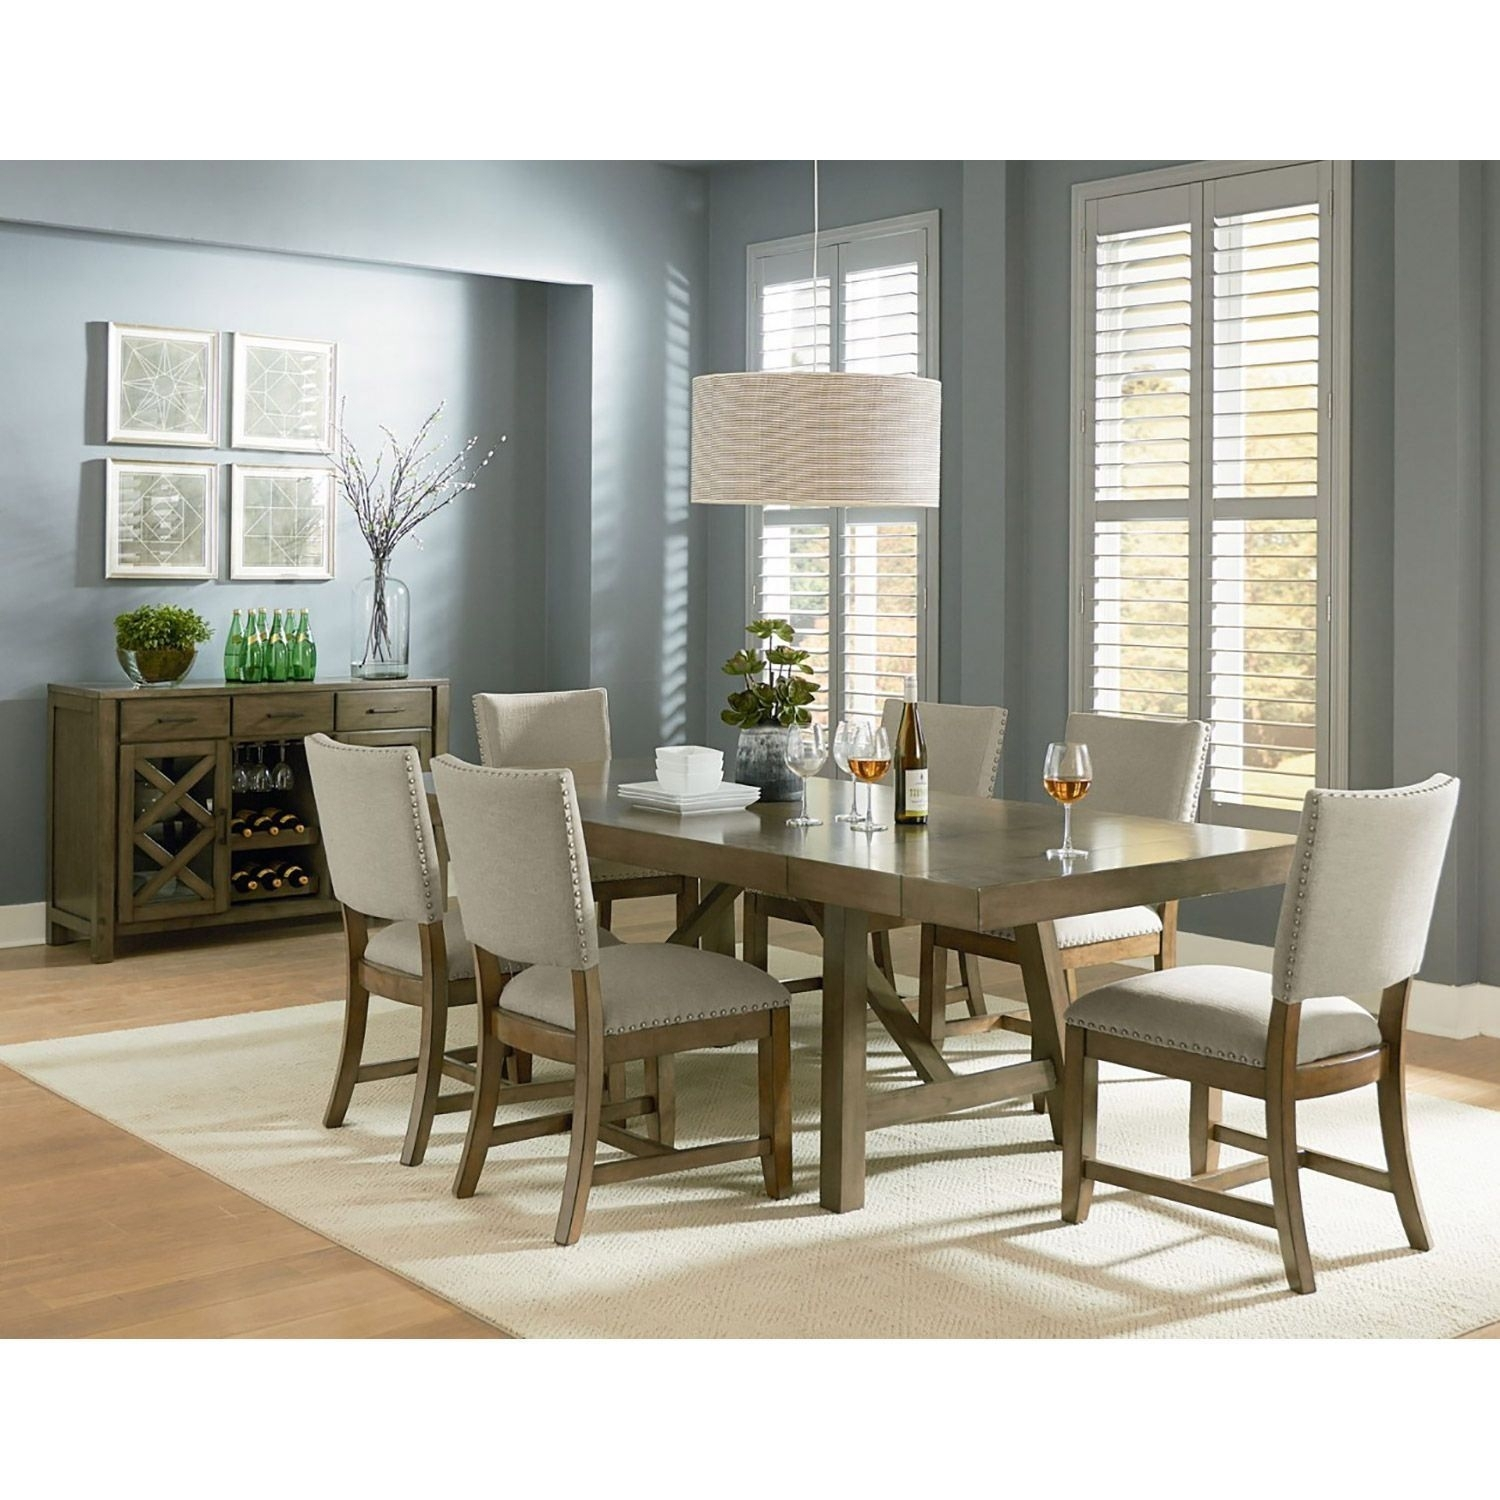 Omaha 7 Piece Dining Set 16681 7Pc | Standard Furniture 16681 1 Regarding Newest Chandler 7 Piece Extension Dining Sets With Wood Side Chairs (Image 17 of 20)